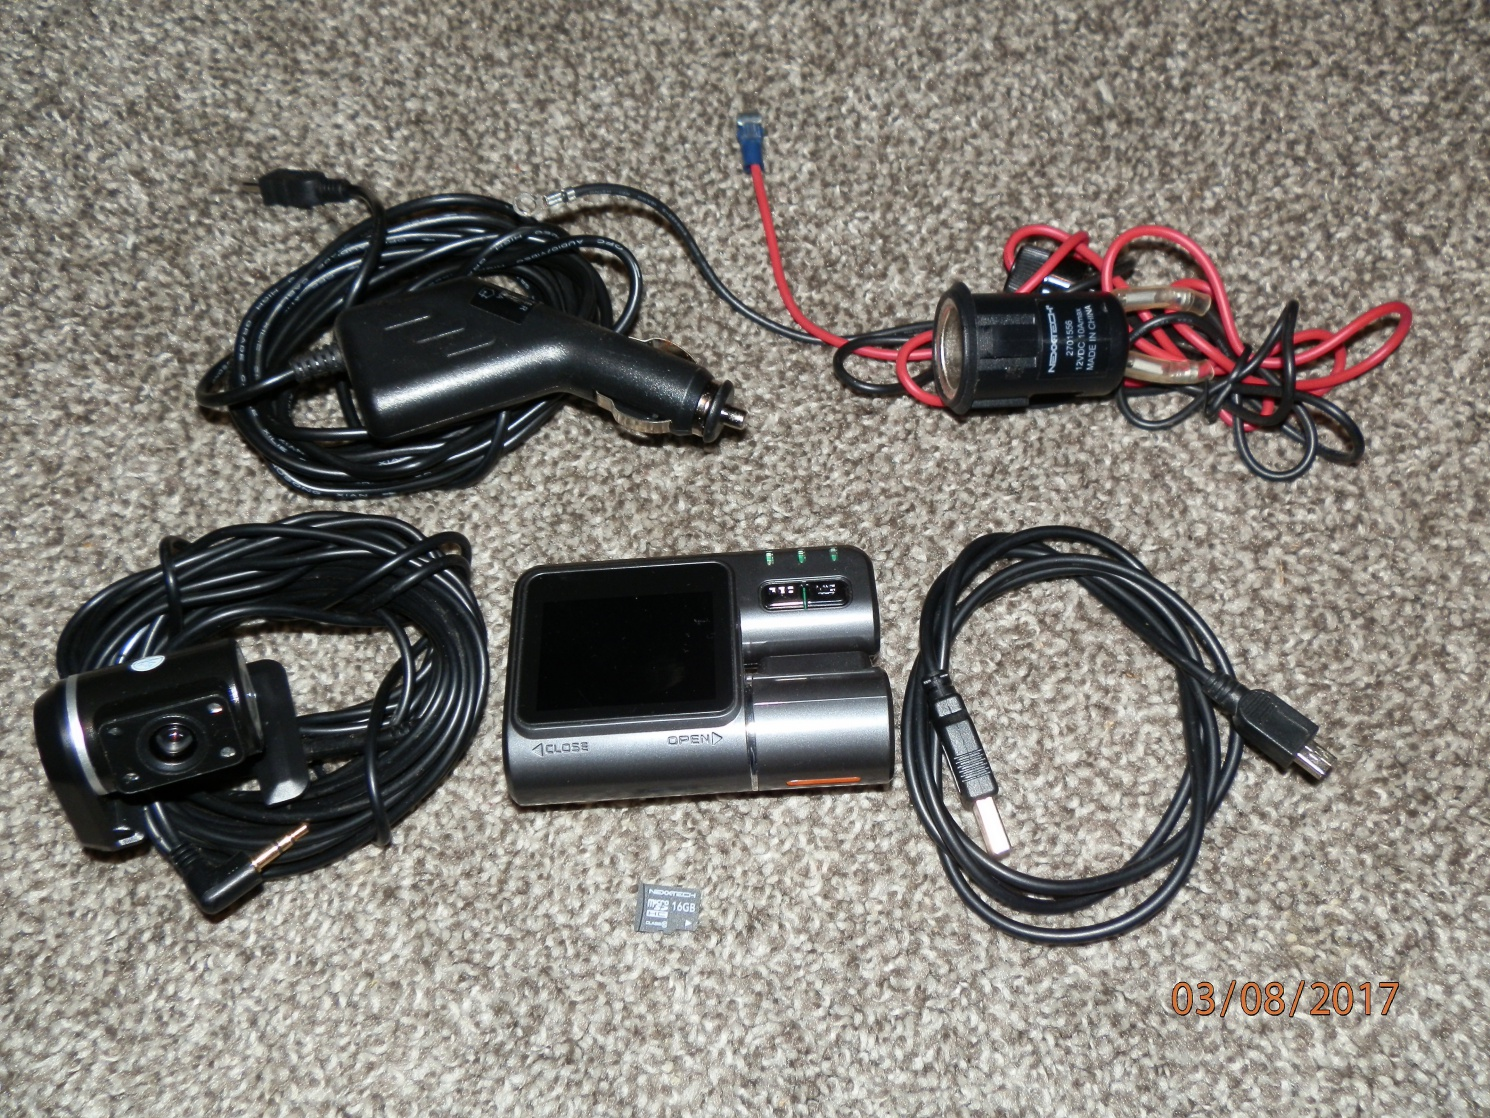 For Sale: HD Dashcam with rear cameran + accessories-p3080047.jpg